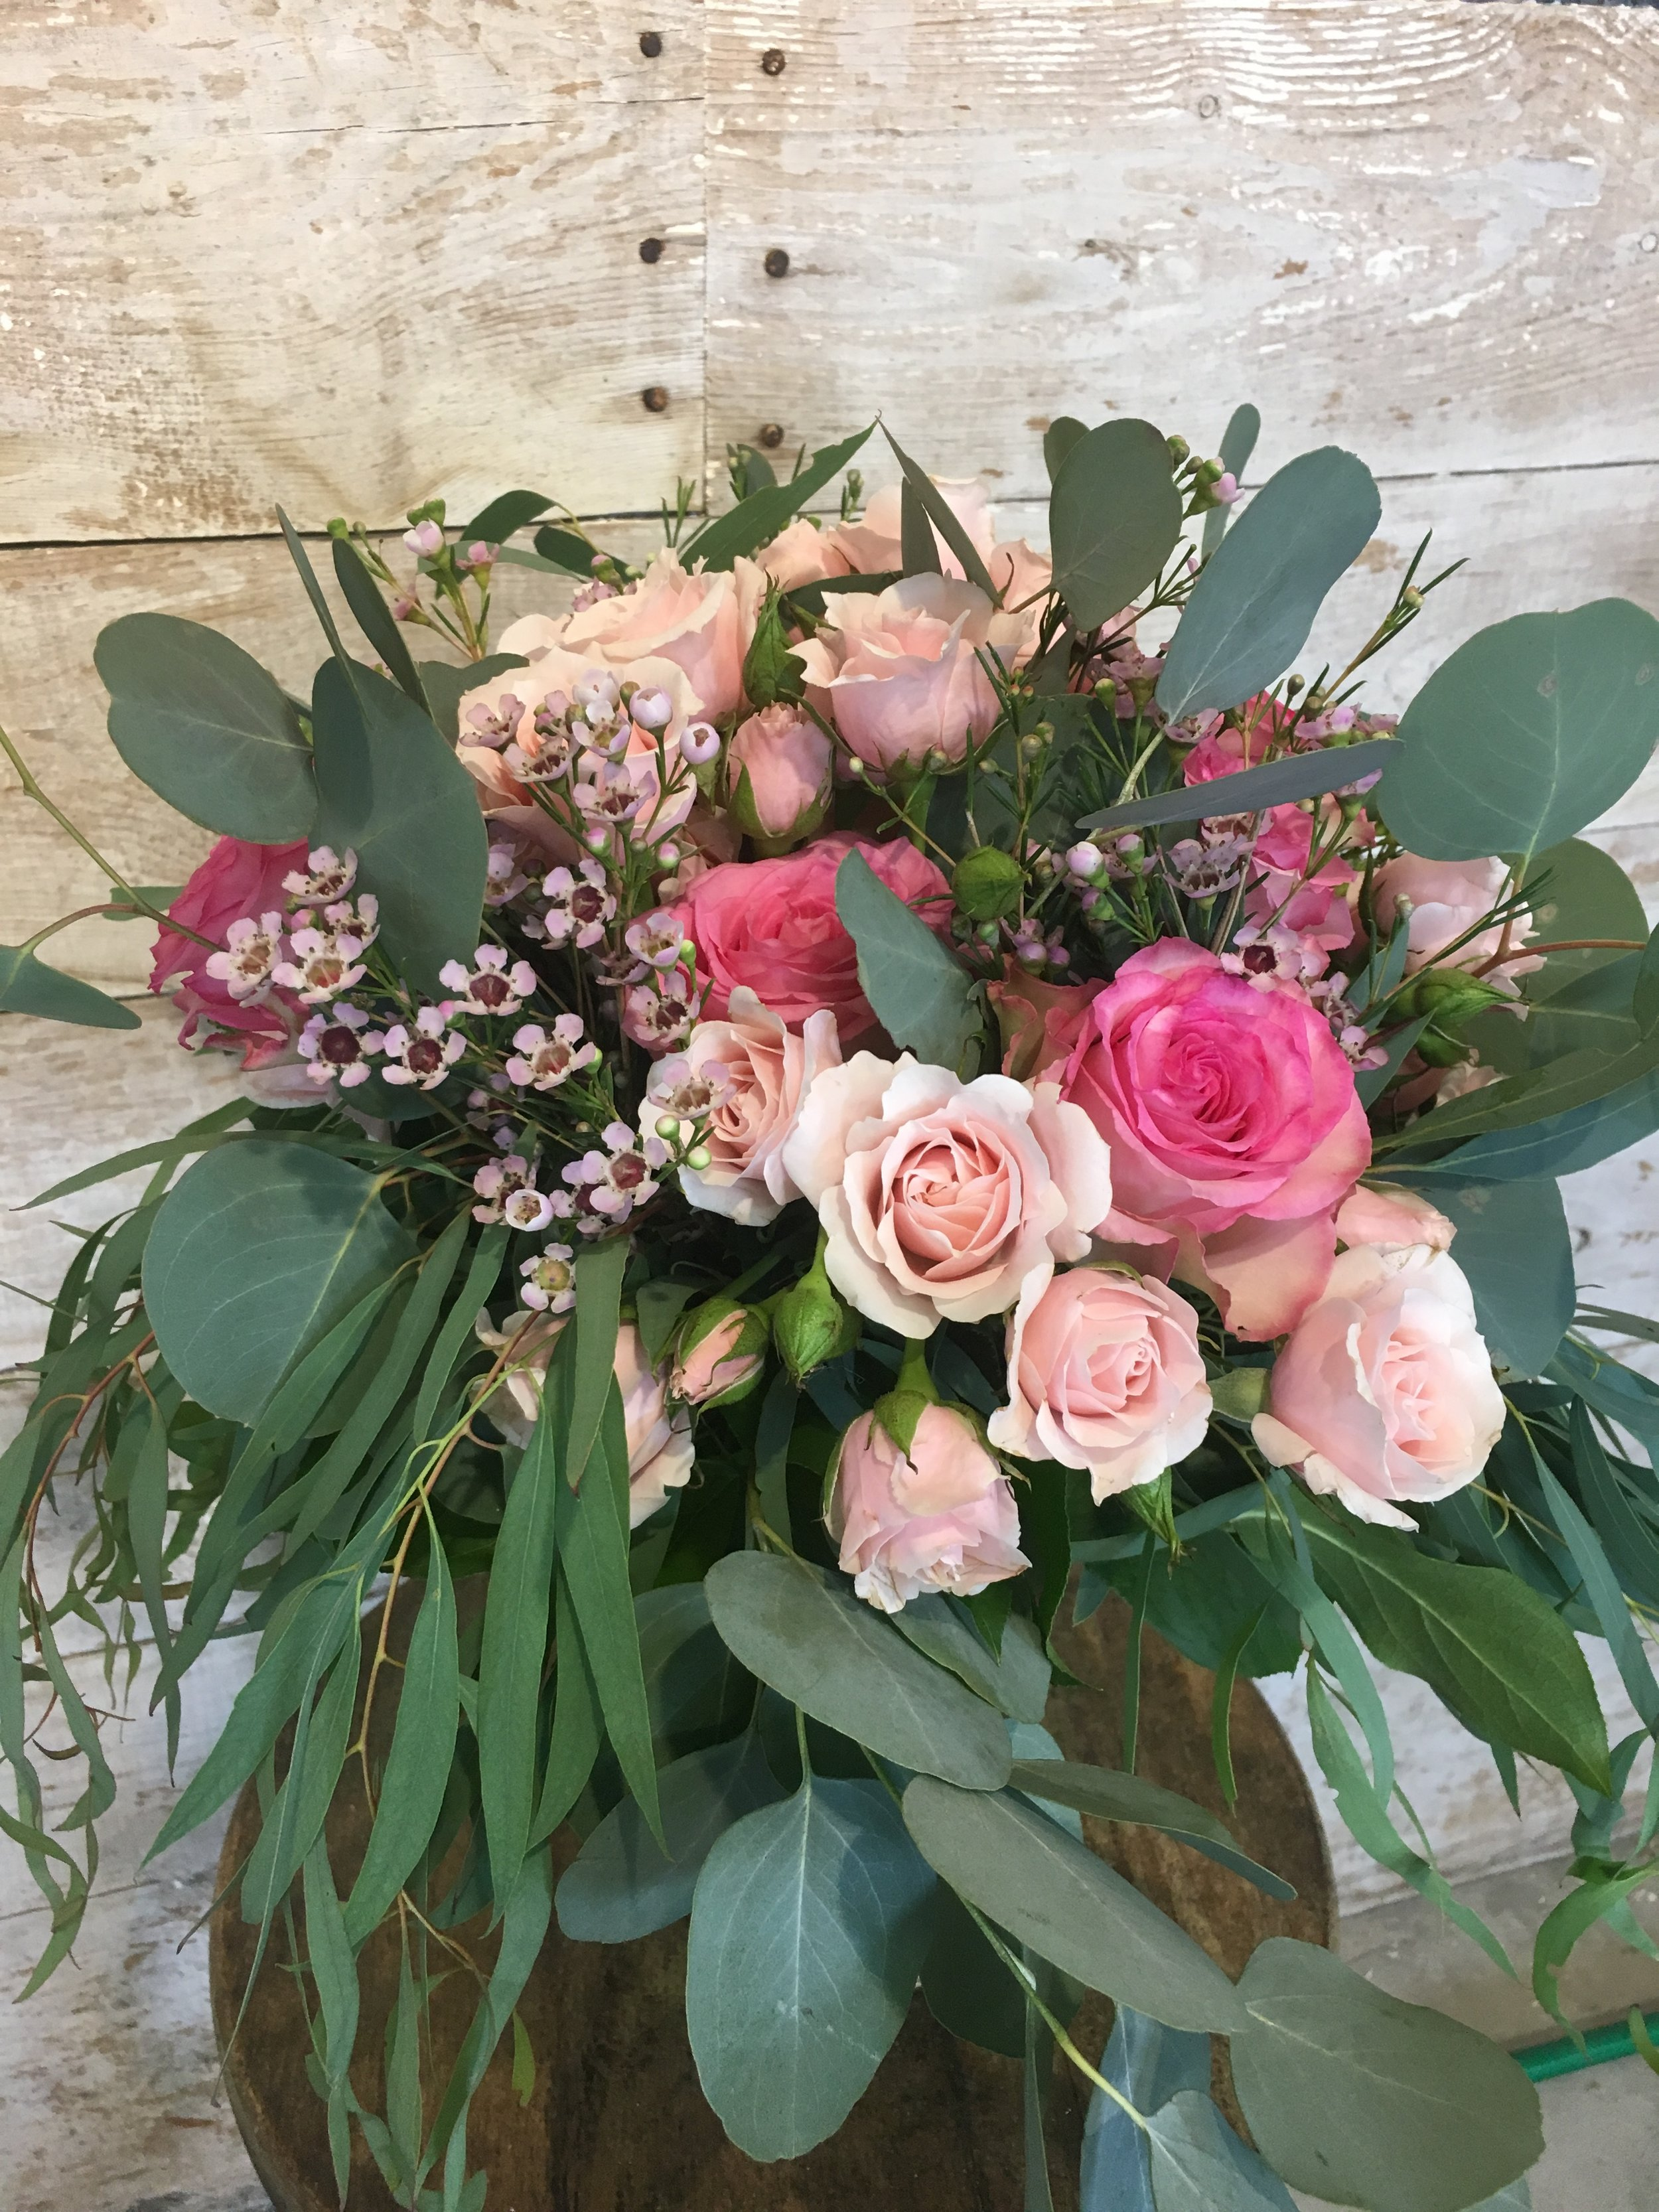 Garden style bouquet becomes more